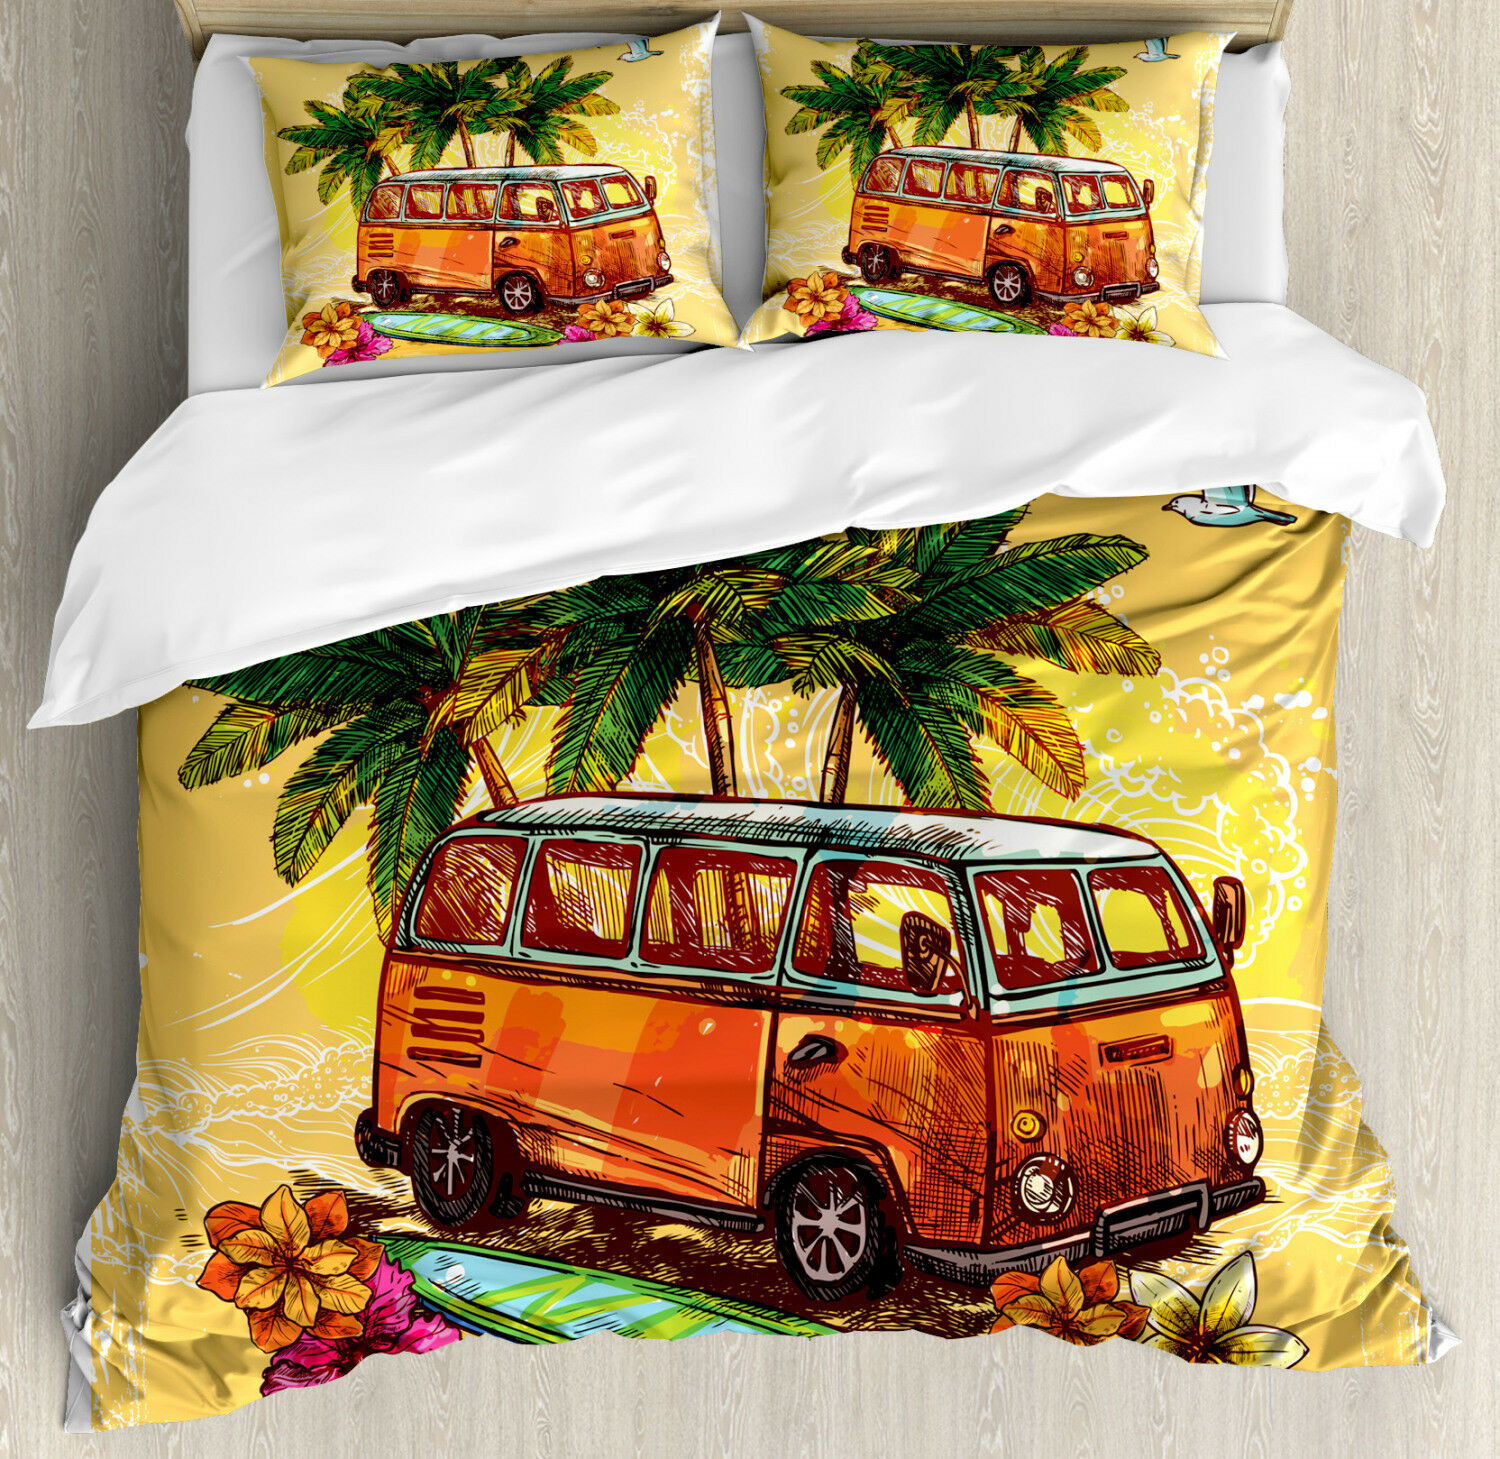 Sketchy Duvet Cover Set with Pillow Shams Hippie Old Exotic Bus Print